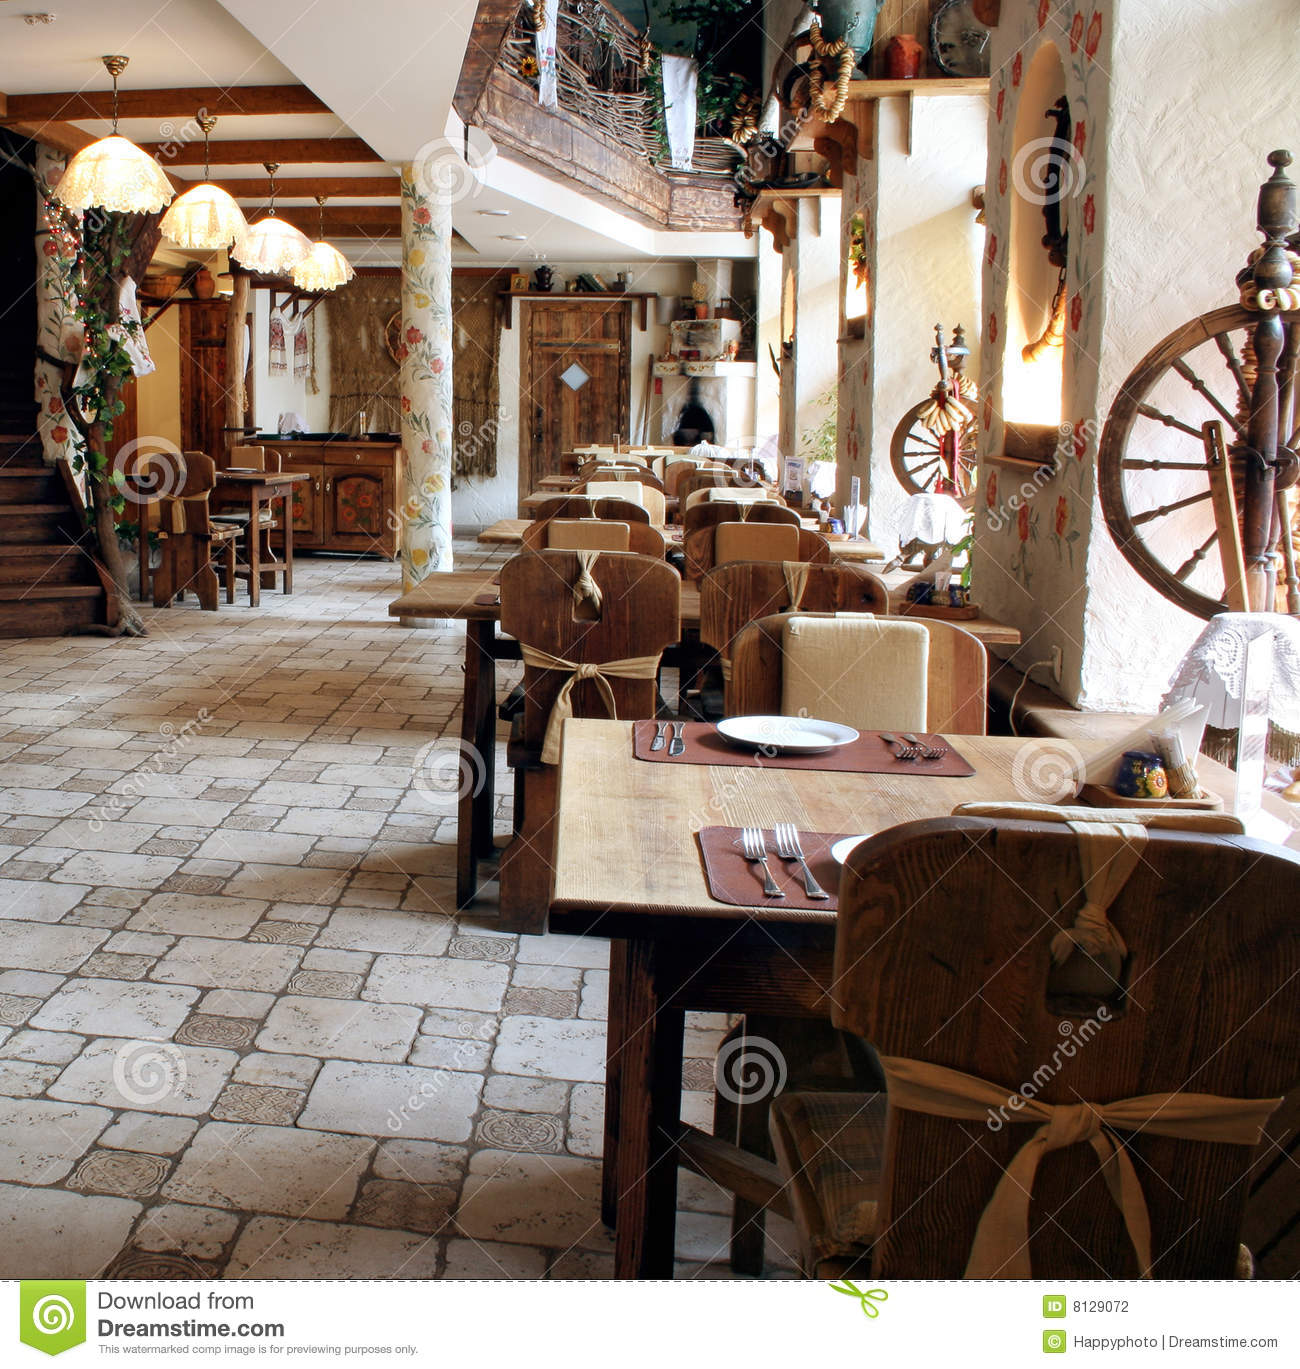 Restaurant In Country Style Stock Photo Image 8129072